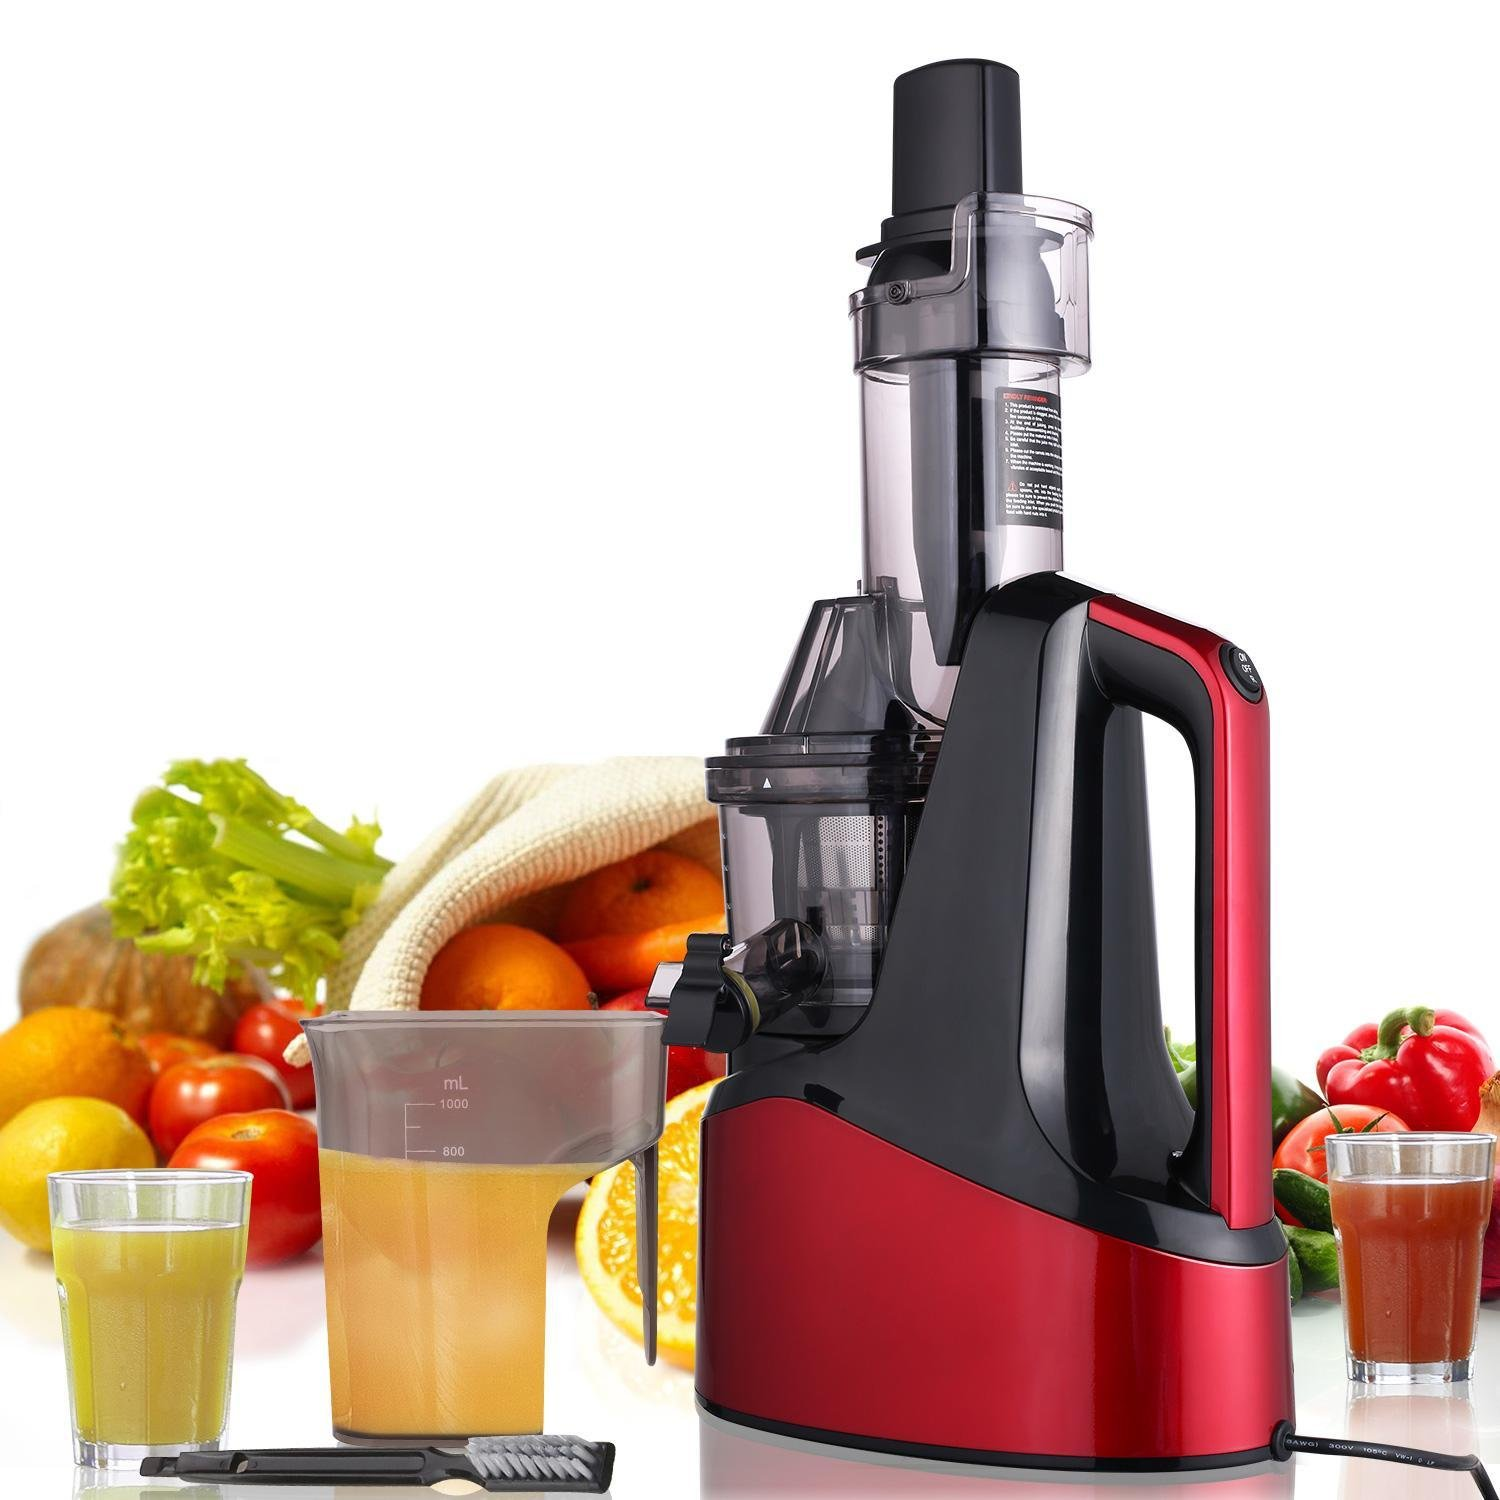 Slow Masticating Juicer Extractor, Cold Press Juicer Machine (240W AC Motor, 60 RPMs) with 76 mm Wide Mouth, Reverse Function with Juice Jug and Brush